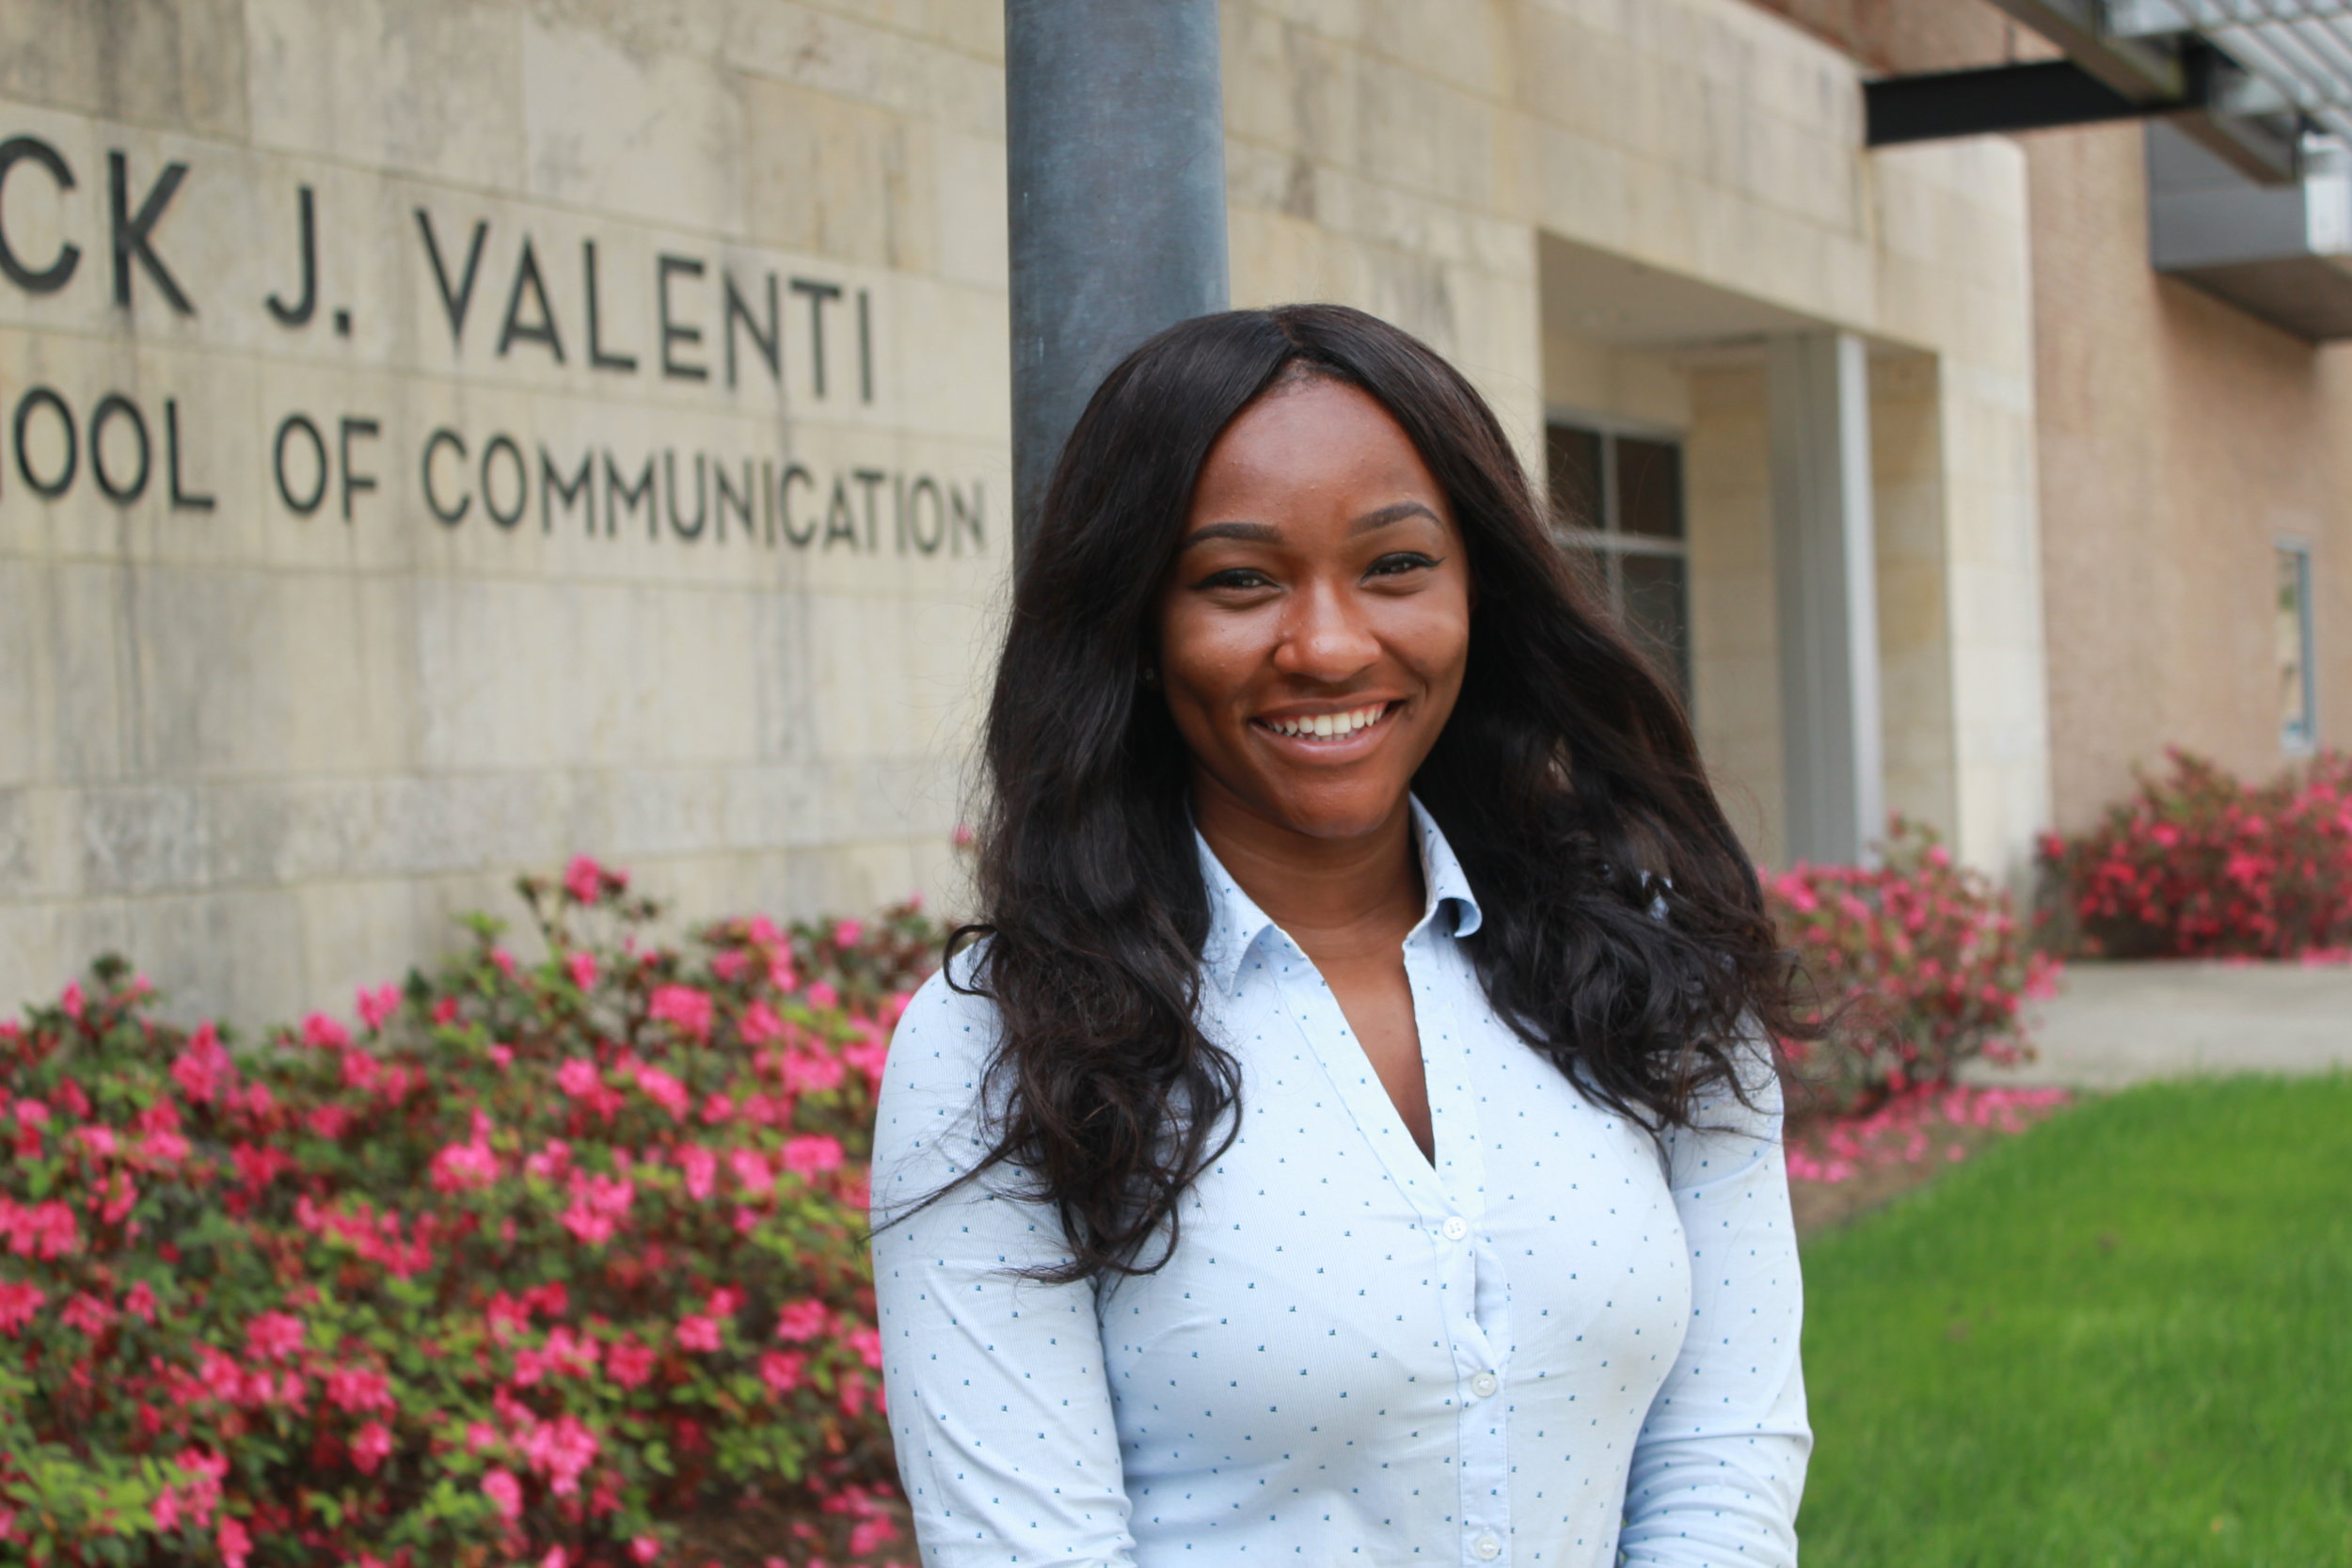 "Courtney Goodson, a junior at the Valenti School of Communication is pursuing a career in journalism. She wants to use her degree as a stepping-stone to become an influential broadcaster. Former host of Coog TV's show ""In The Game"". She has interned for ESPN 97.5 Houston most recently as an Audio Engineer and editor working her way up the latter. She serves as 1 of 2 hosts for the sports and entertainment Vlogcast show ""Breadwinners"" that is filmed in the studios of Valenti. Not only is Courtney pursuing sports journalism, but she has already gained years of experience in the Public Relations industry working for sports complexes and BMW. Hoop for Harvey and Texas Grid Iron are just a few events that she has put together to help kids, adults, and families in need. She will partner with Valenti this summer to film a summer series with her show Breadwinners at local Houston eateries."